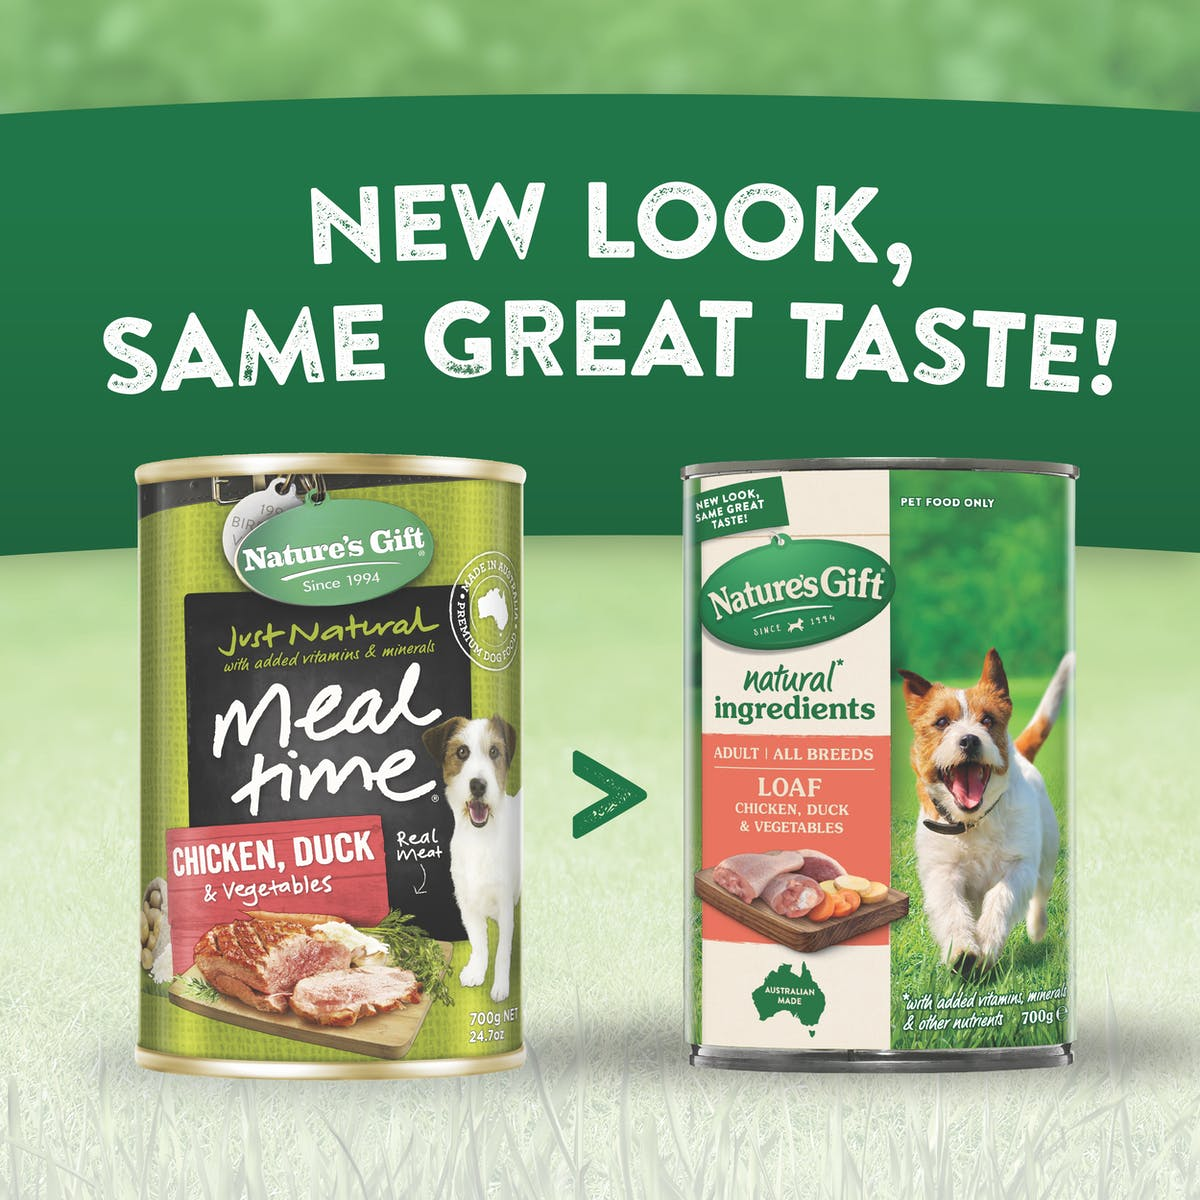 Nature's Gift | Chicken, Duck & Vegetables | Wet dog food | Back of pack